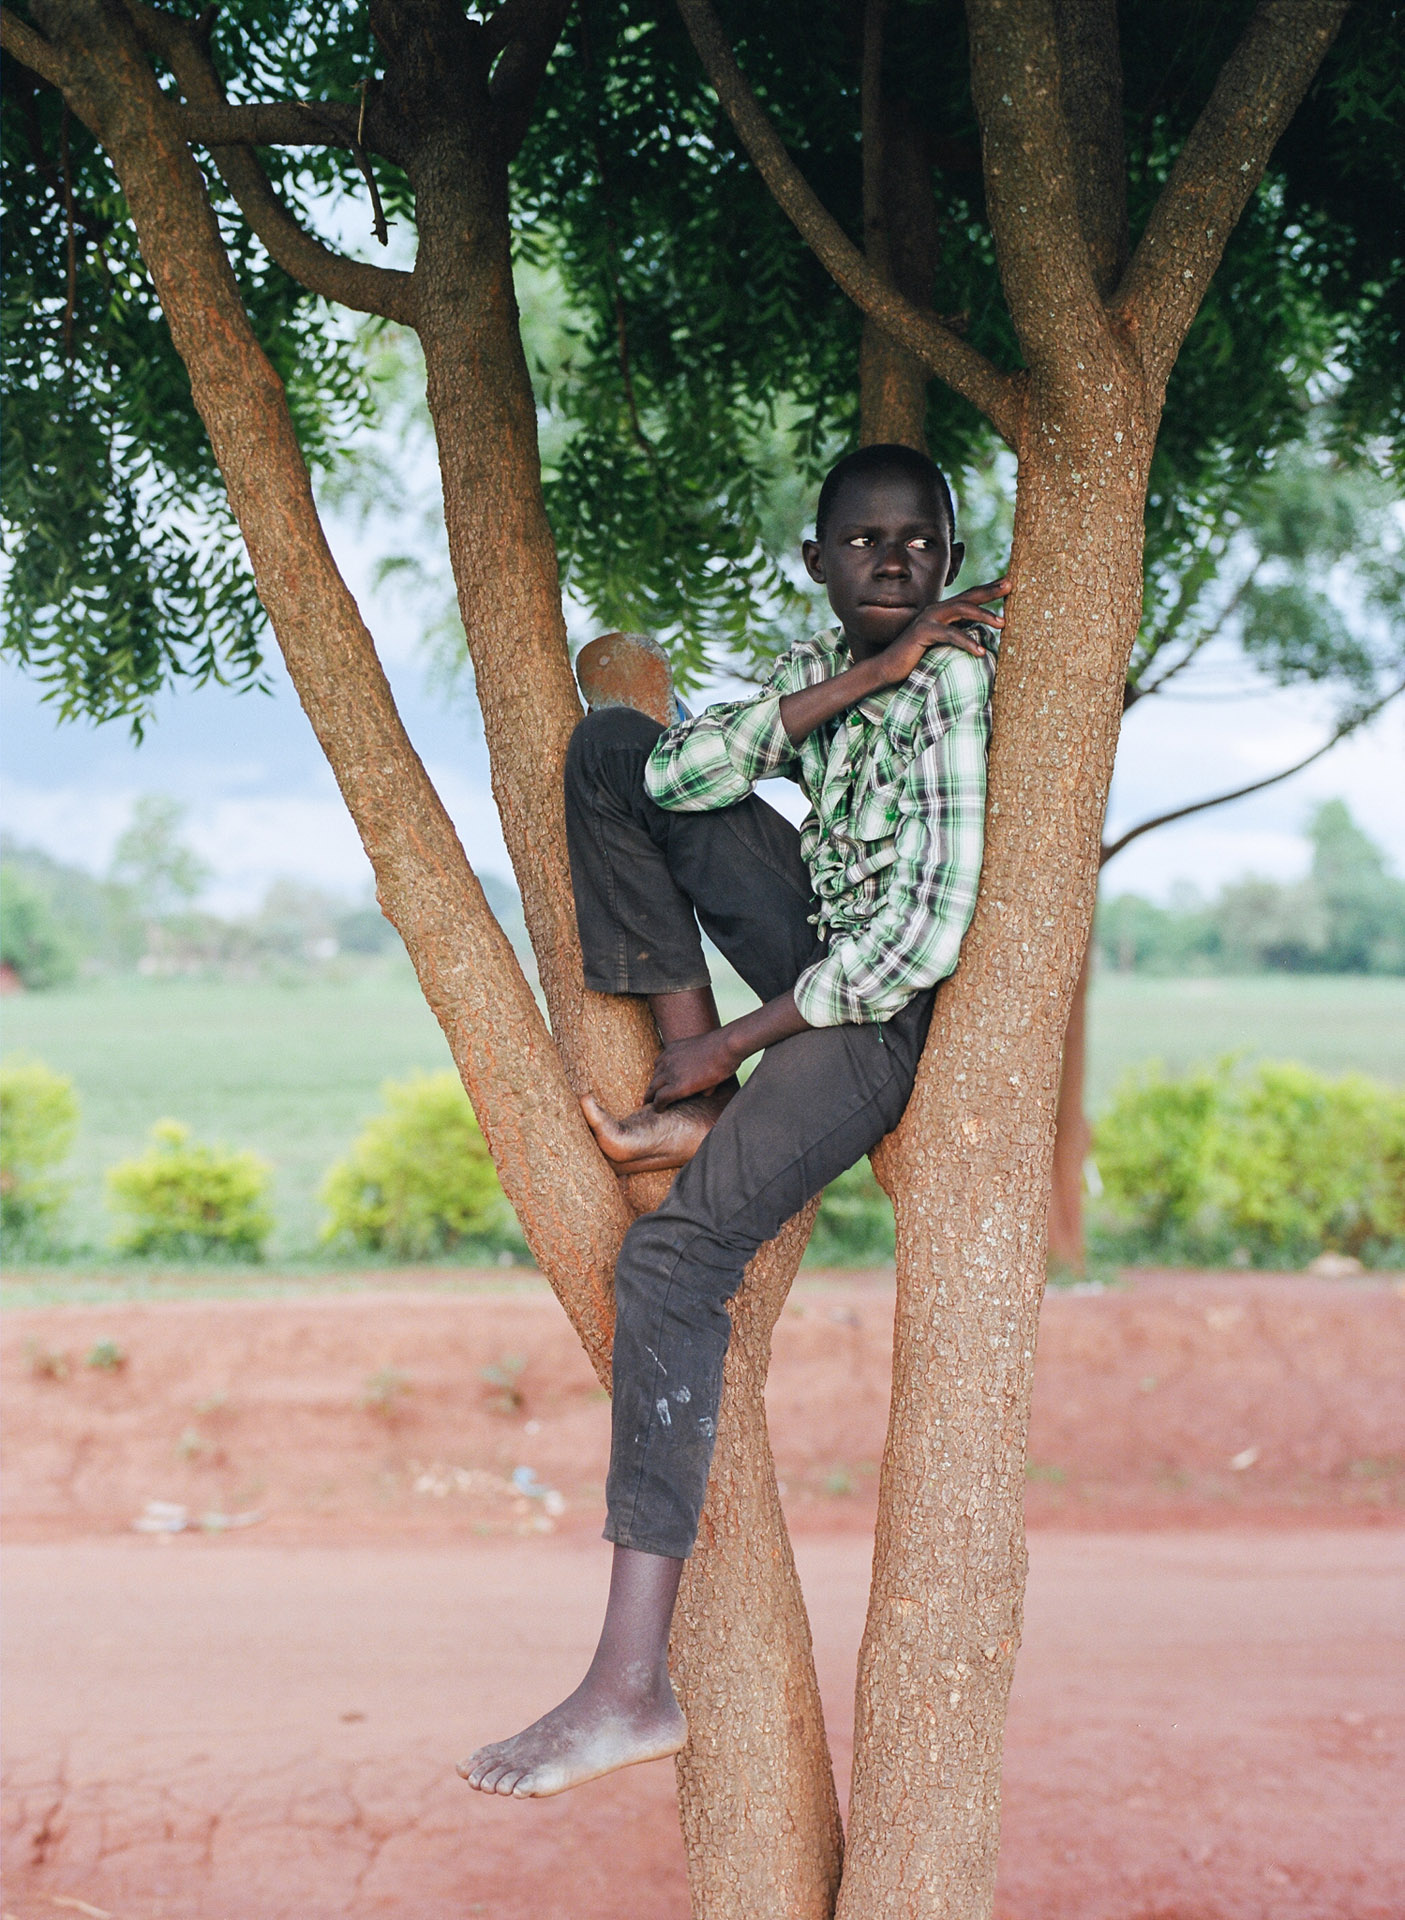 young black boy sitting in tree looking away by Alexi Hobbs in Uganda for Football for good with Sportsnet